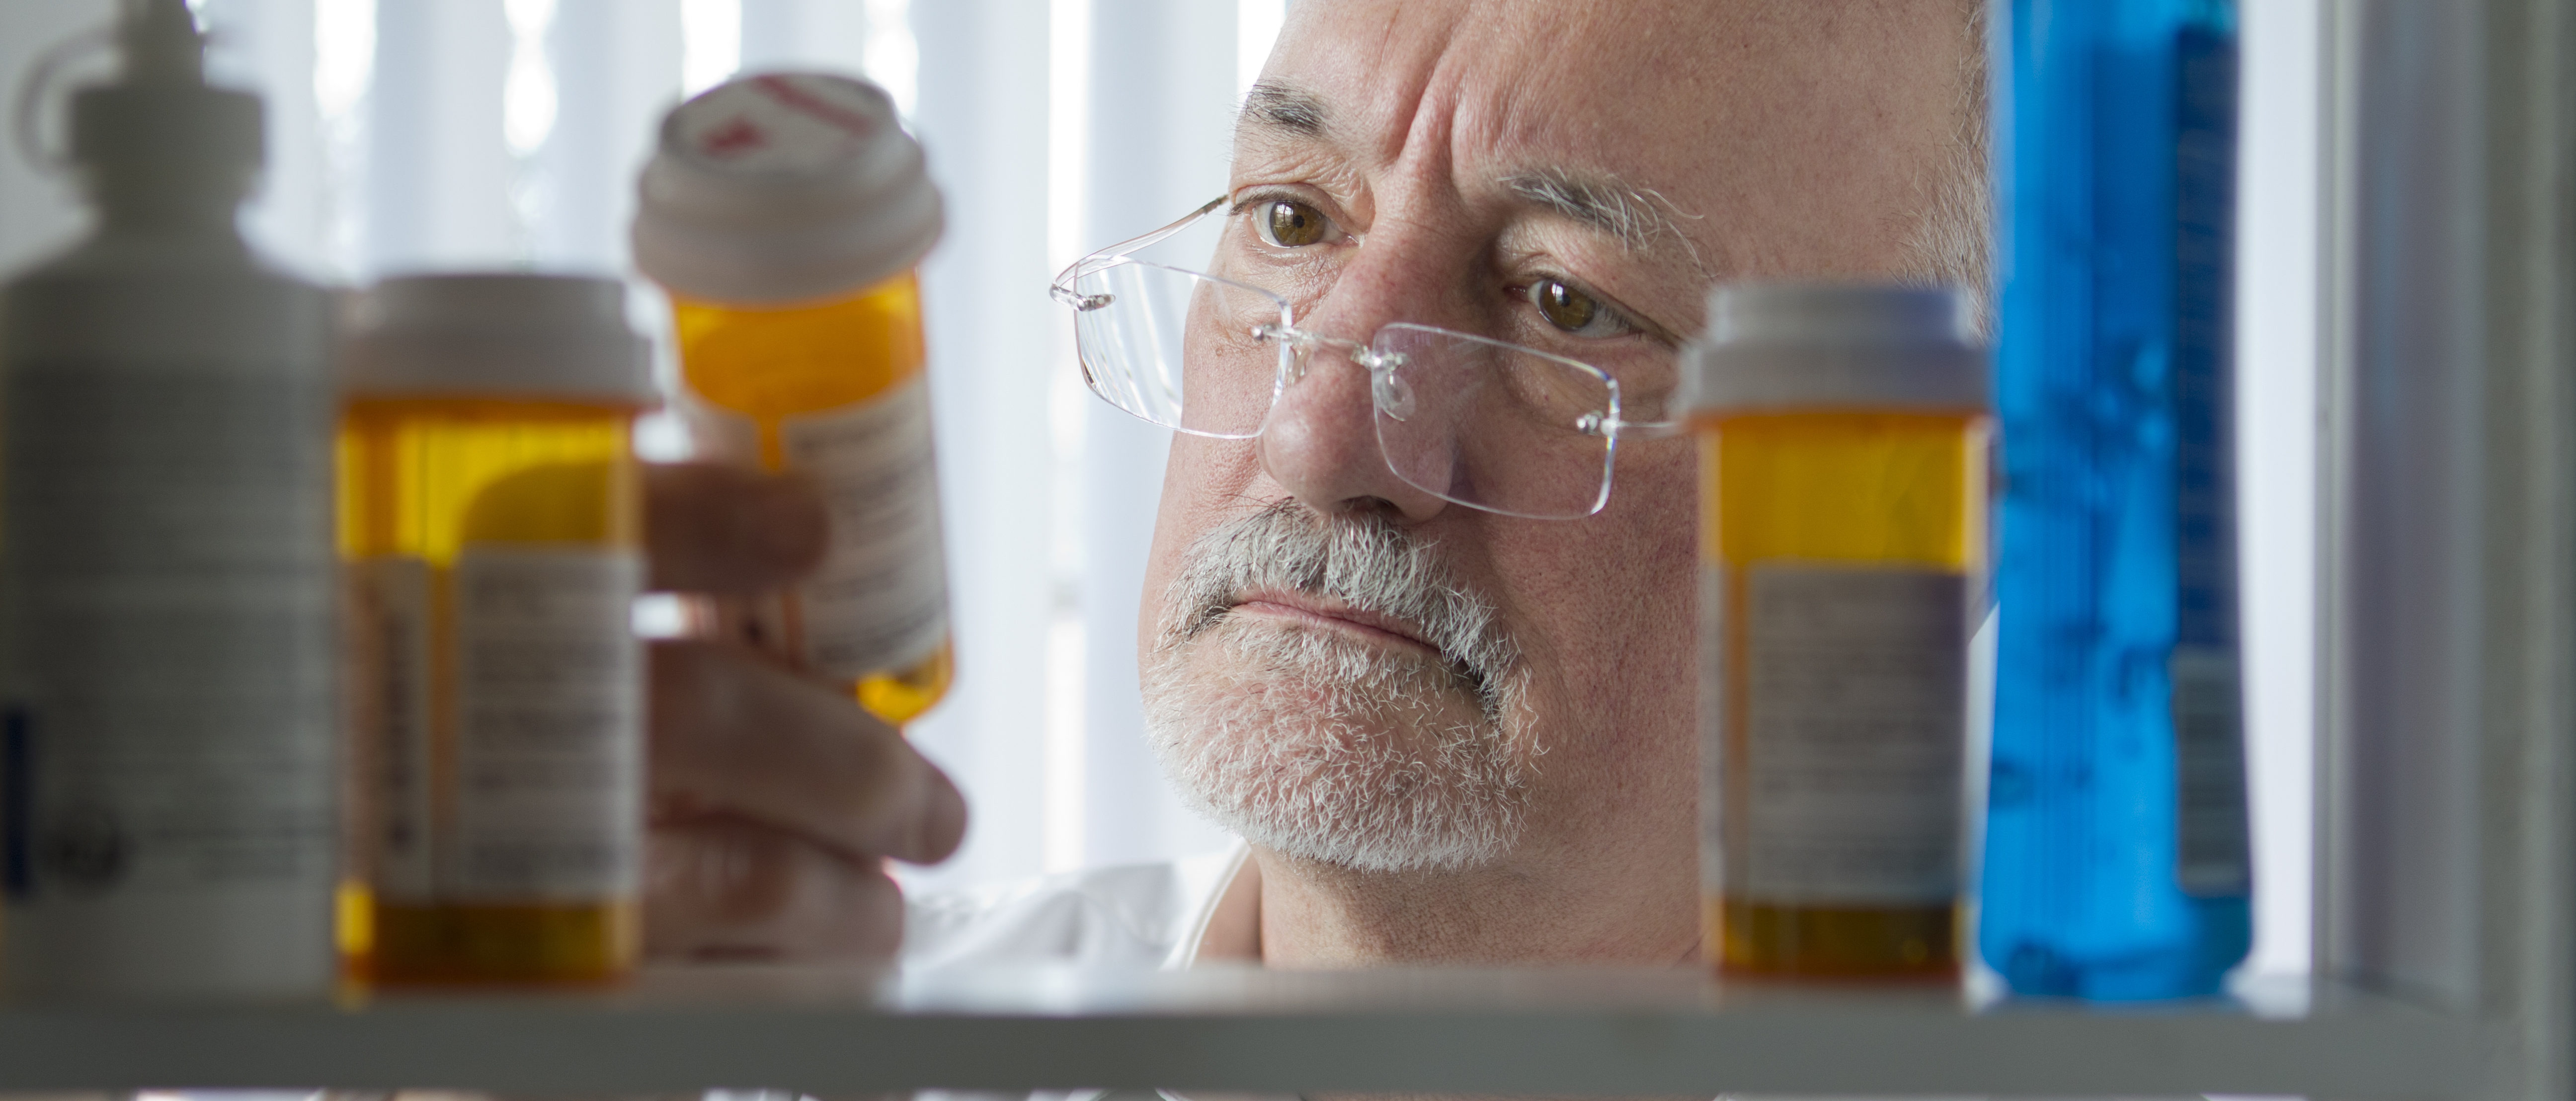 A man looks at a bottle of prescription drugs. Shutterstock photo via Burlingham